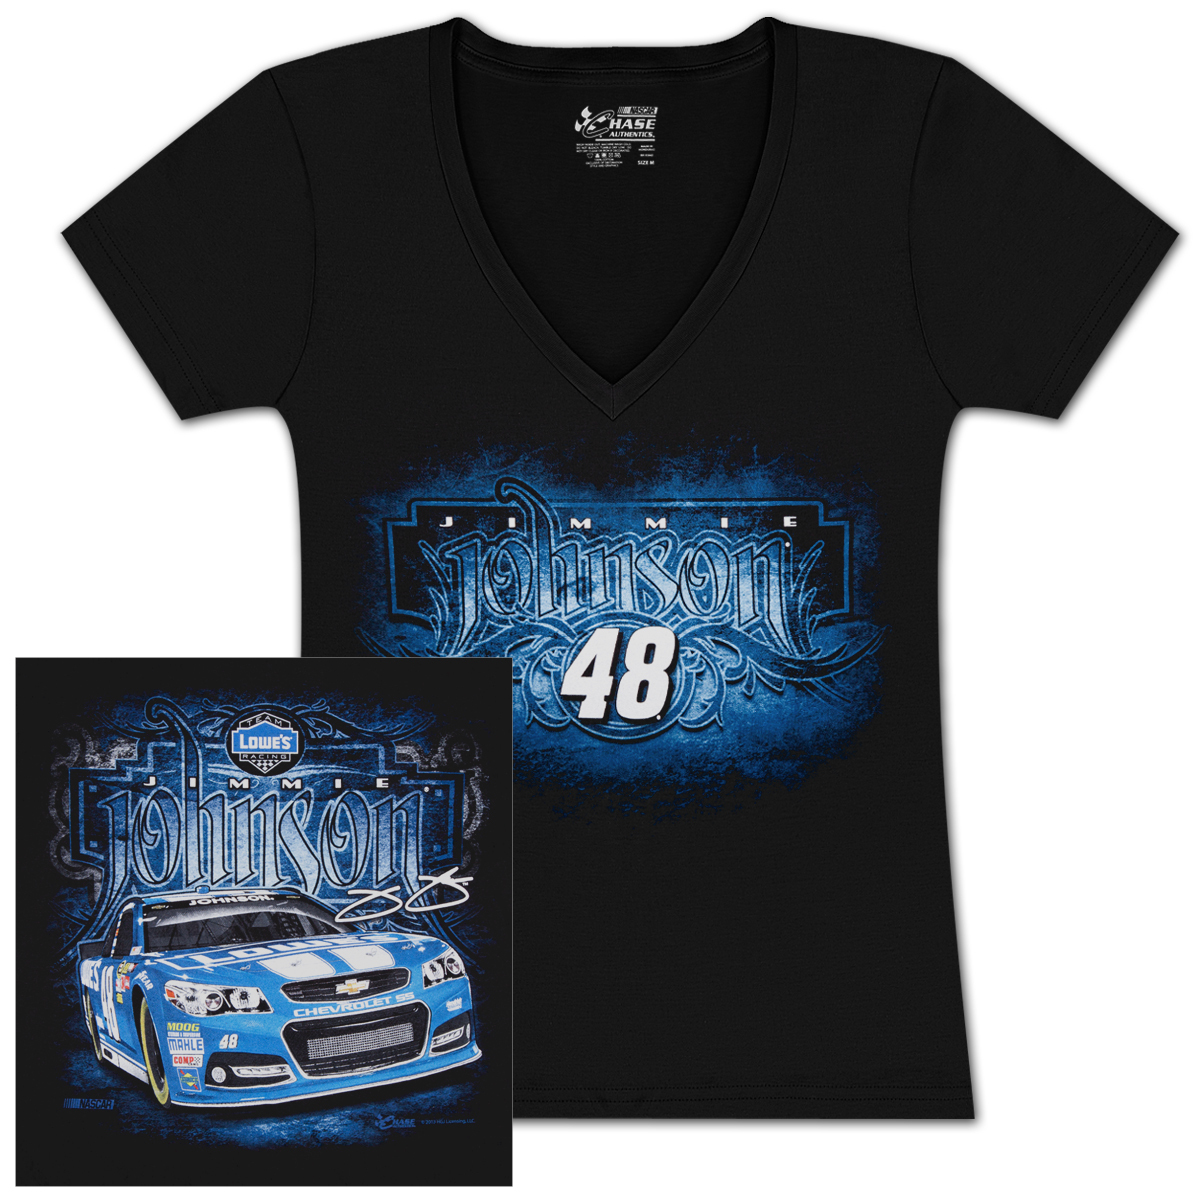 Jimmie Johnson #48 Lowes Fabricator Ladies T-shirt